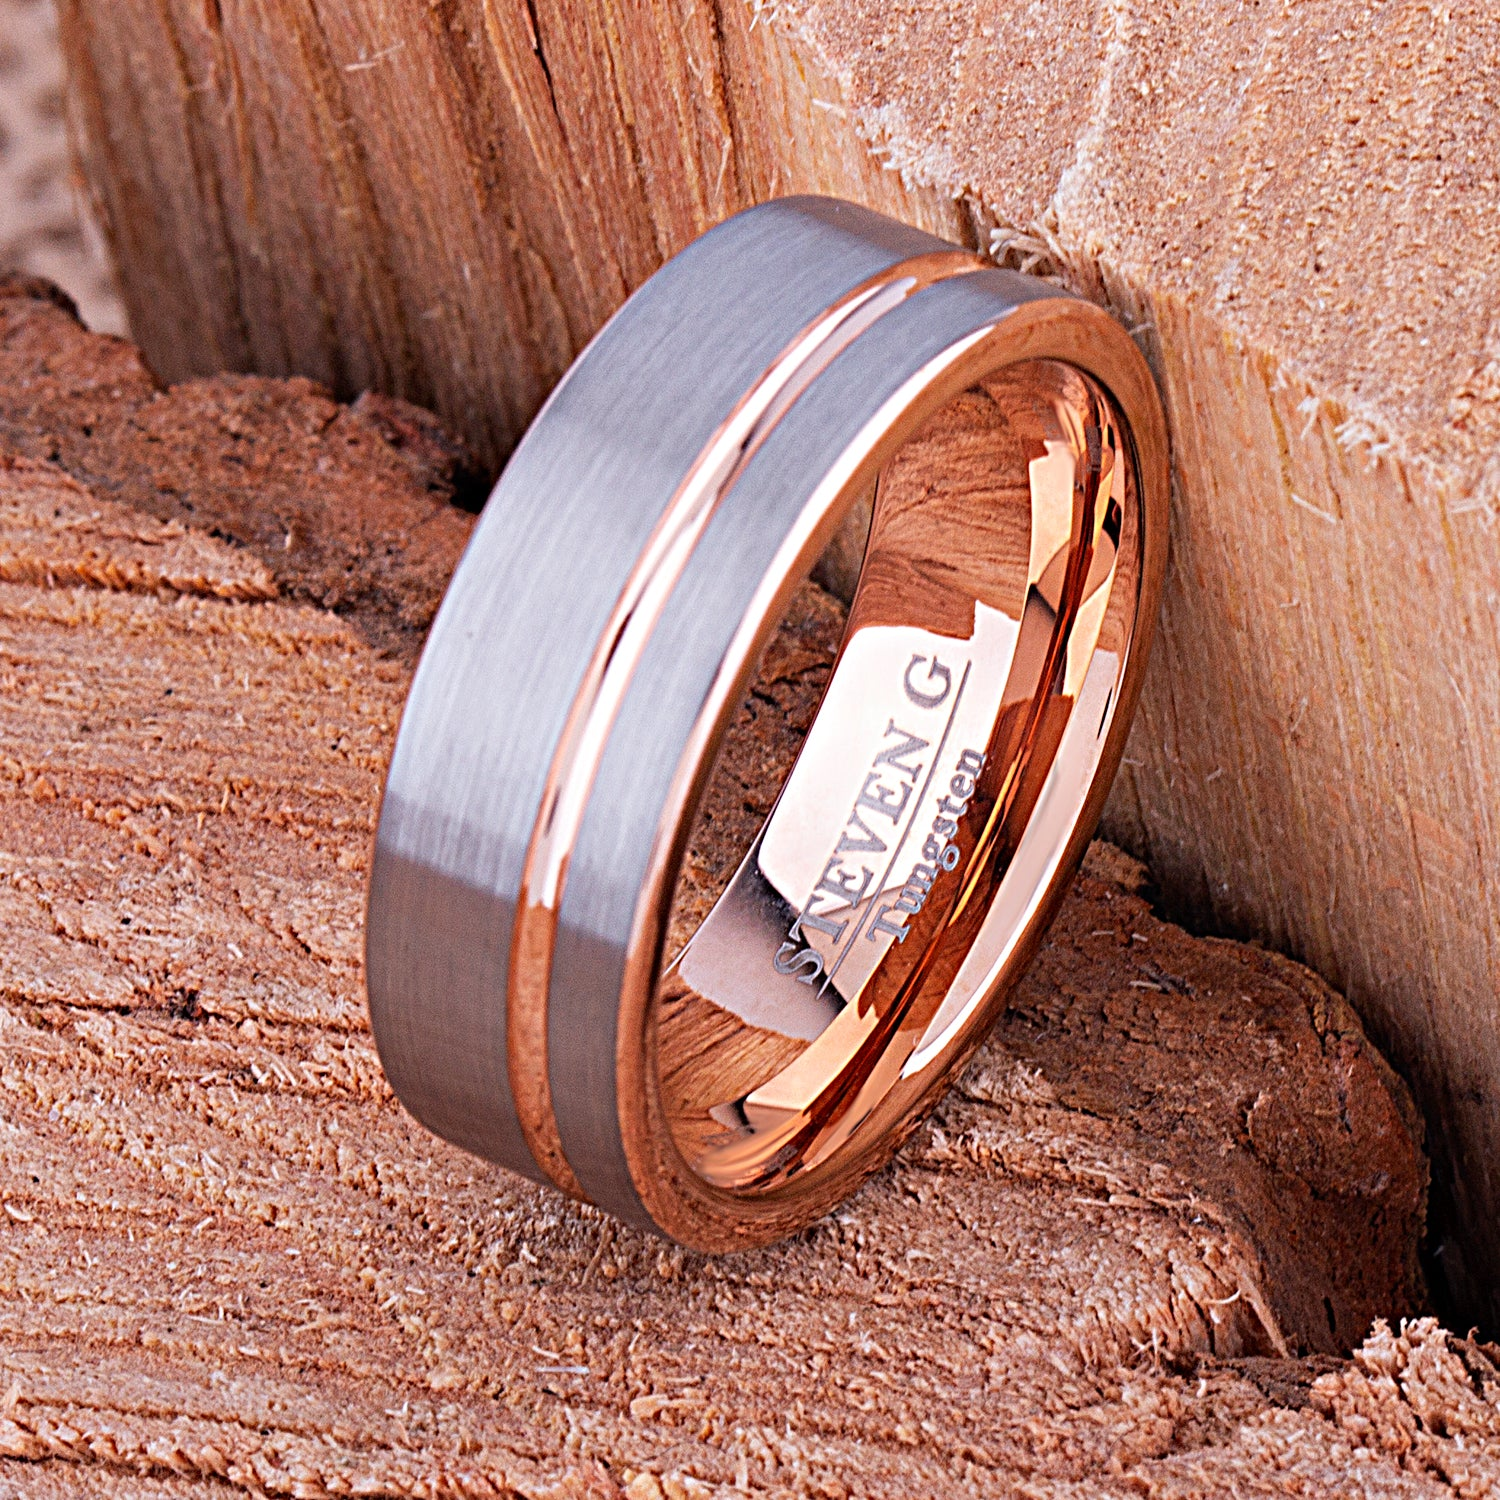 Rose Gold Tungsten Ring  8mm - TCR109 rose gold men's wedding or engagement band or promise ring for boyfriend